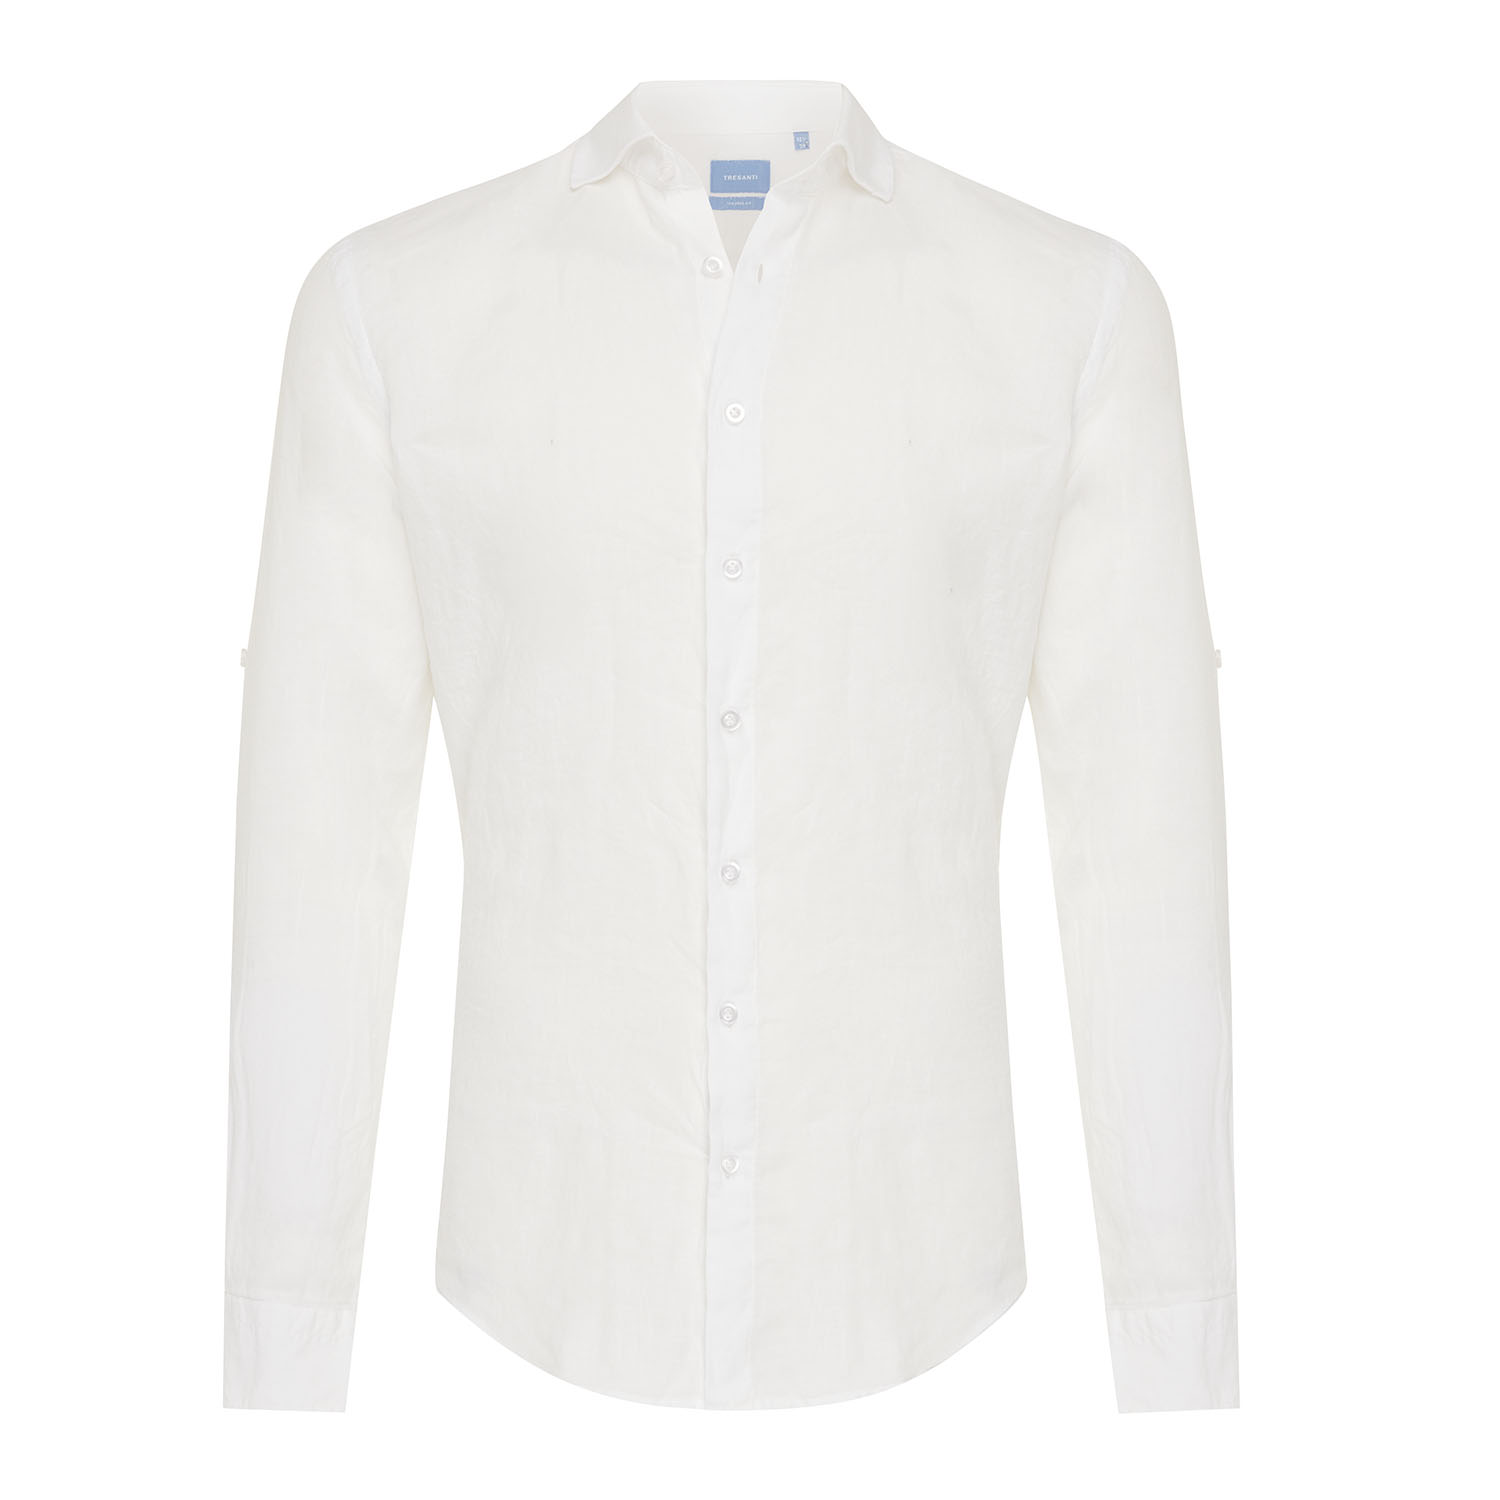 Tristan | Basic linen shirt white